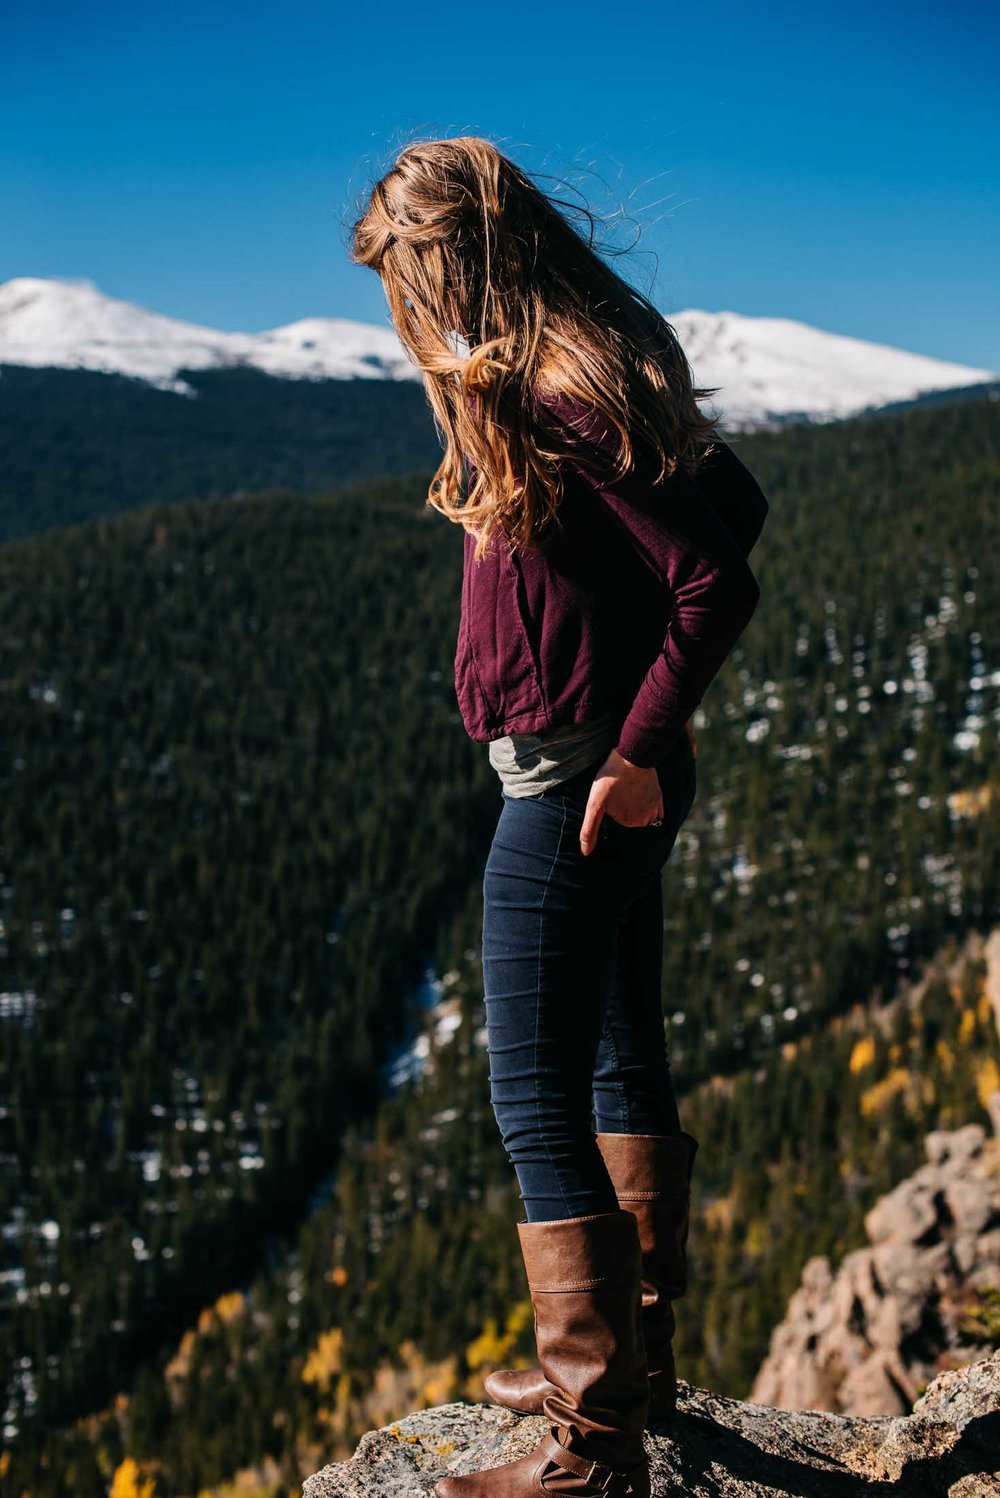 42-emmy-searching-for-the-light-photography-colorado-photographer-elopement-photographer-dance-photographer-couple-photographer_DSC_6325.jpg